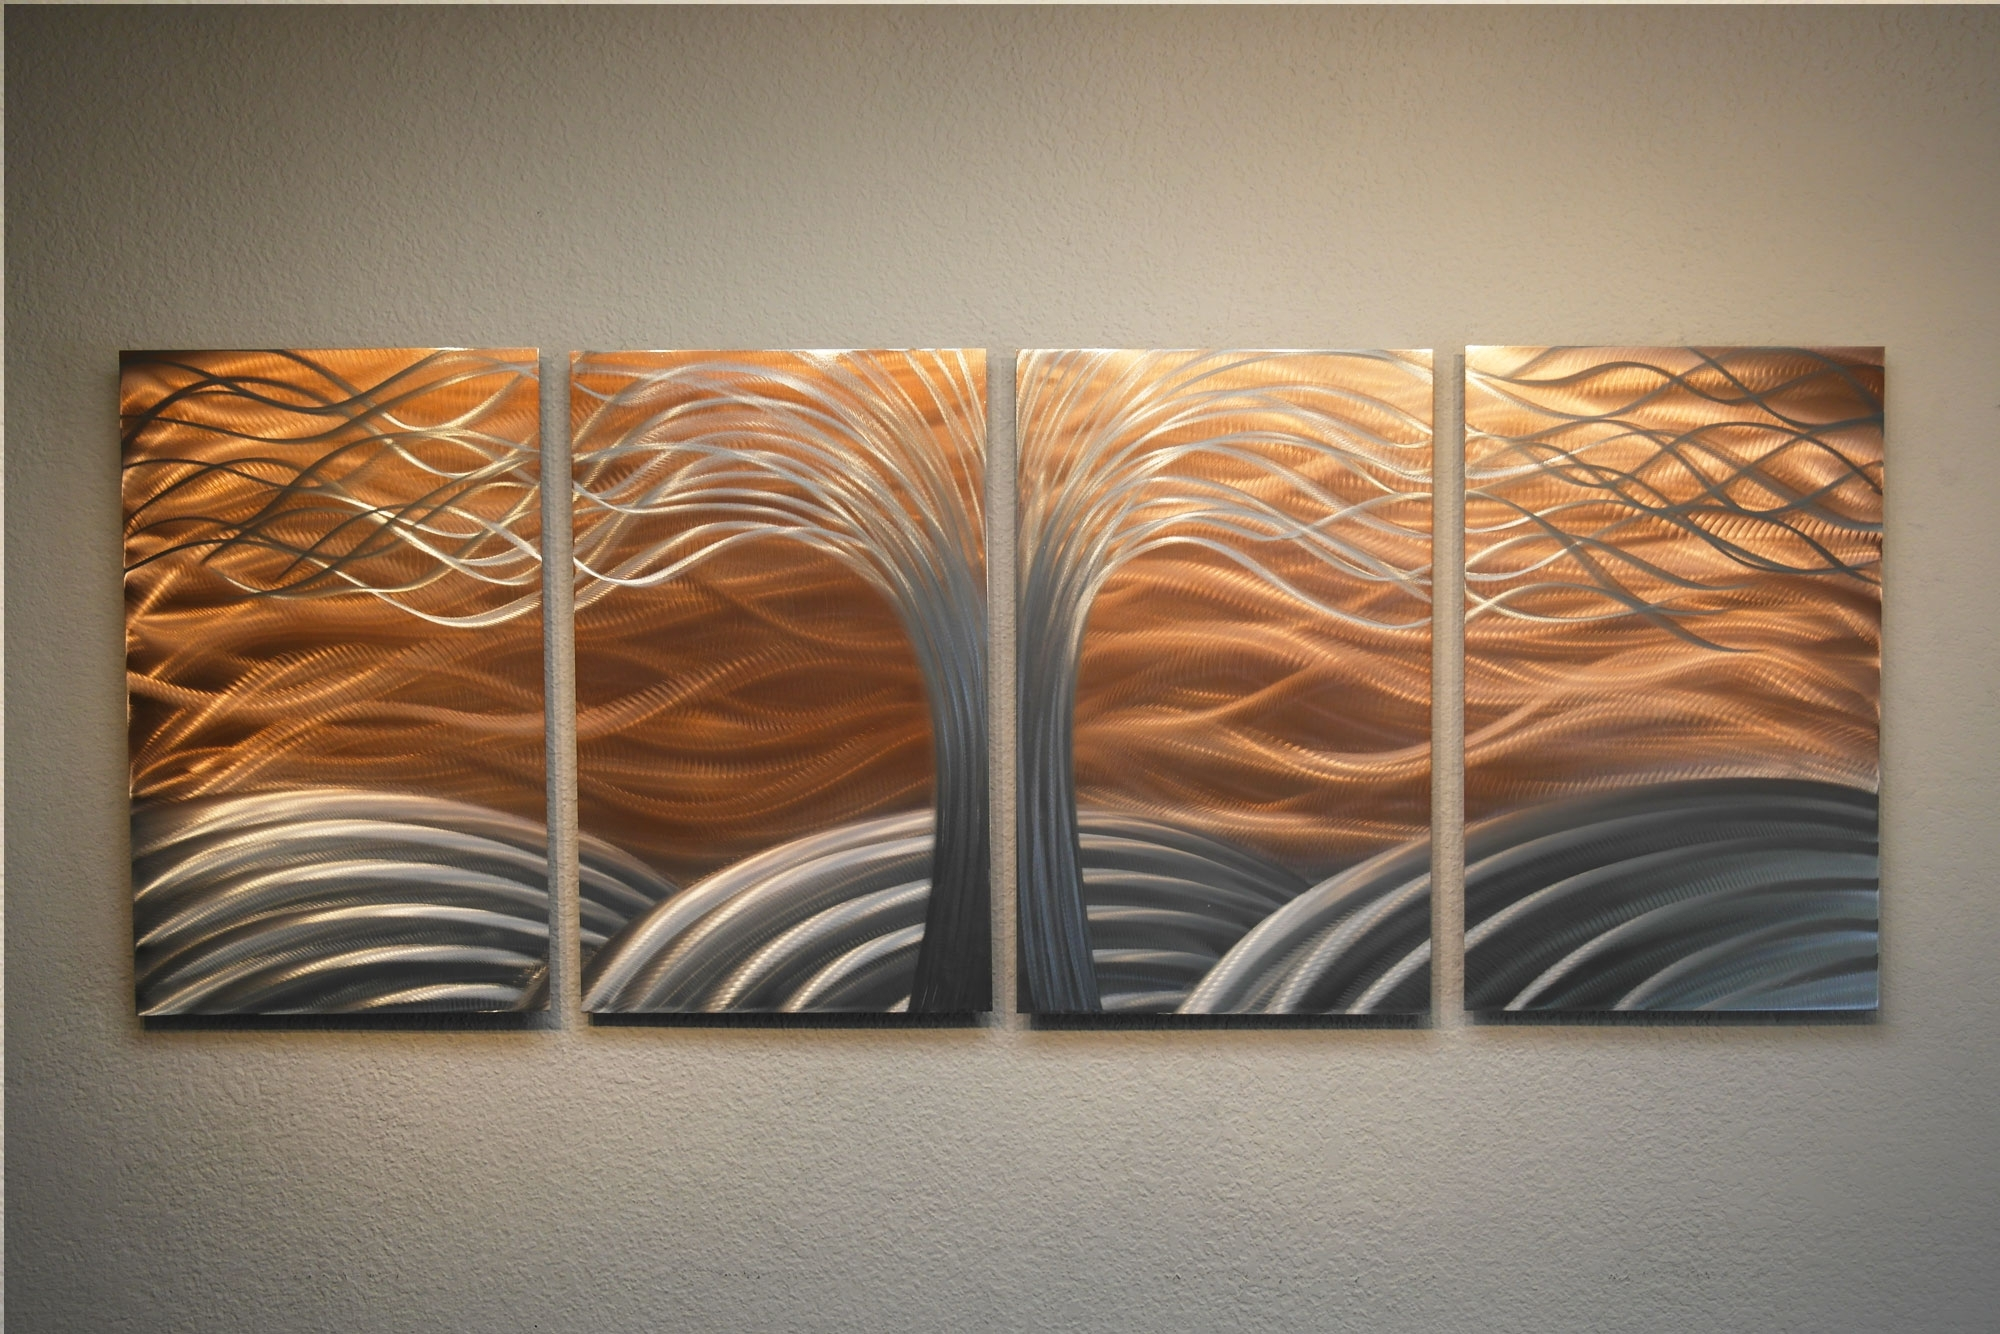 Tree Of Life Bright Copper – Metal Wall Art Abstract Sculpture Intended For Most Recent Tree Of Life Wall Art (View 9 of 15)